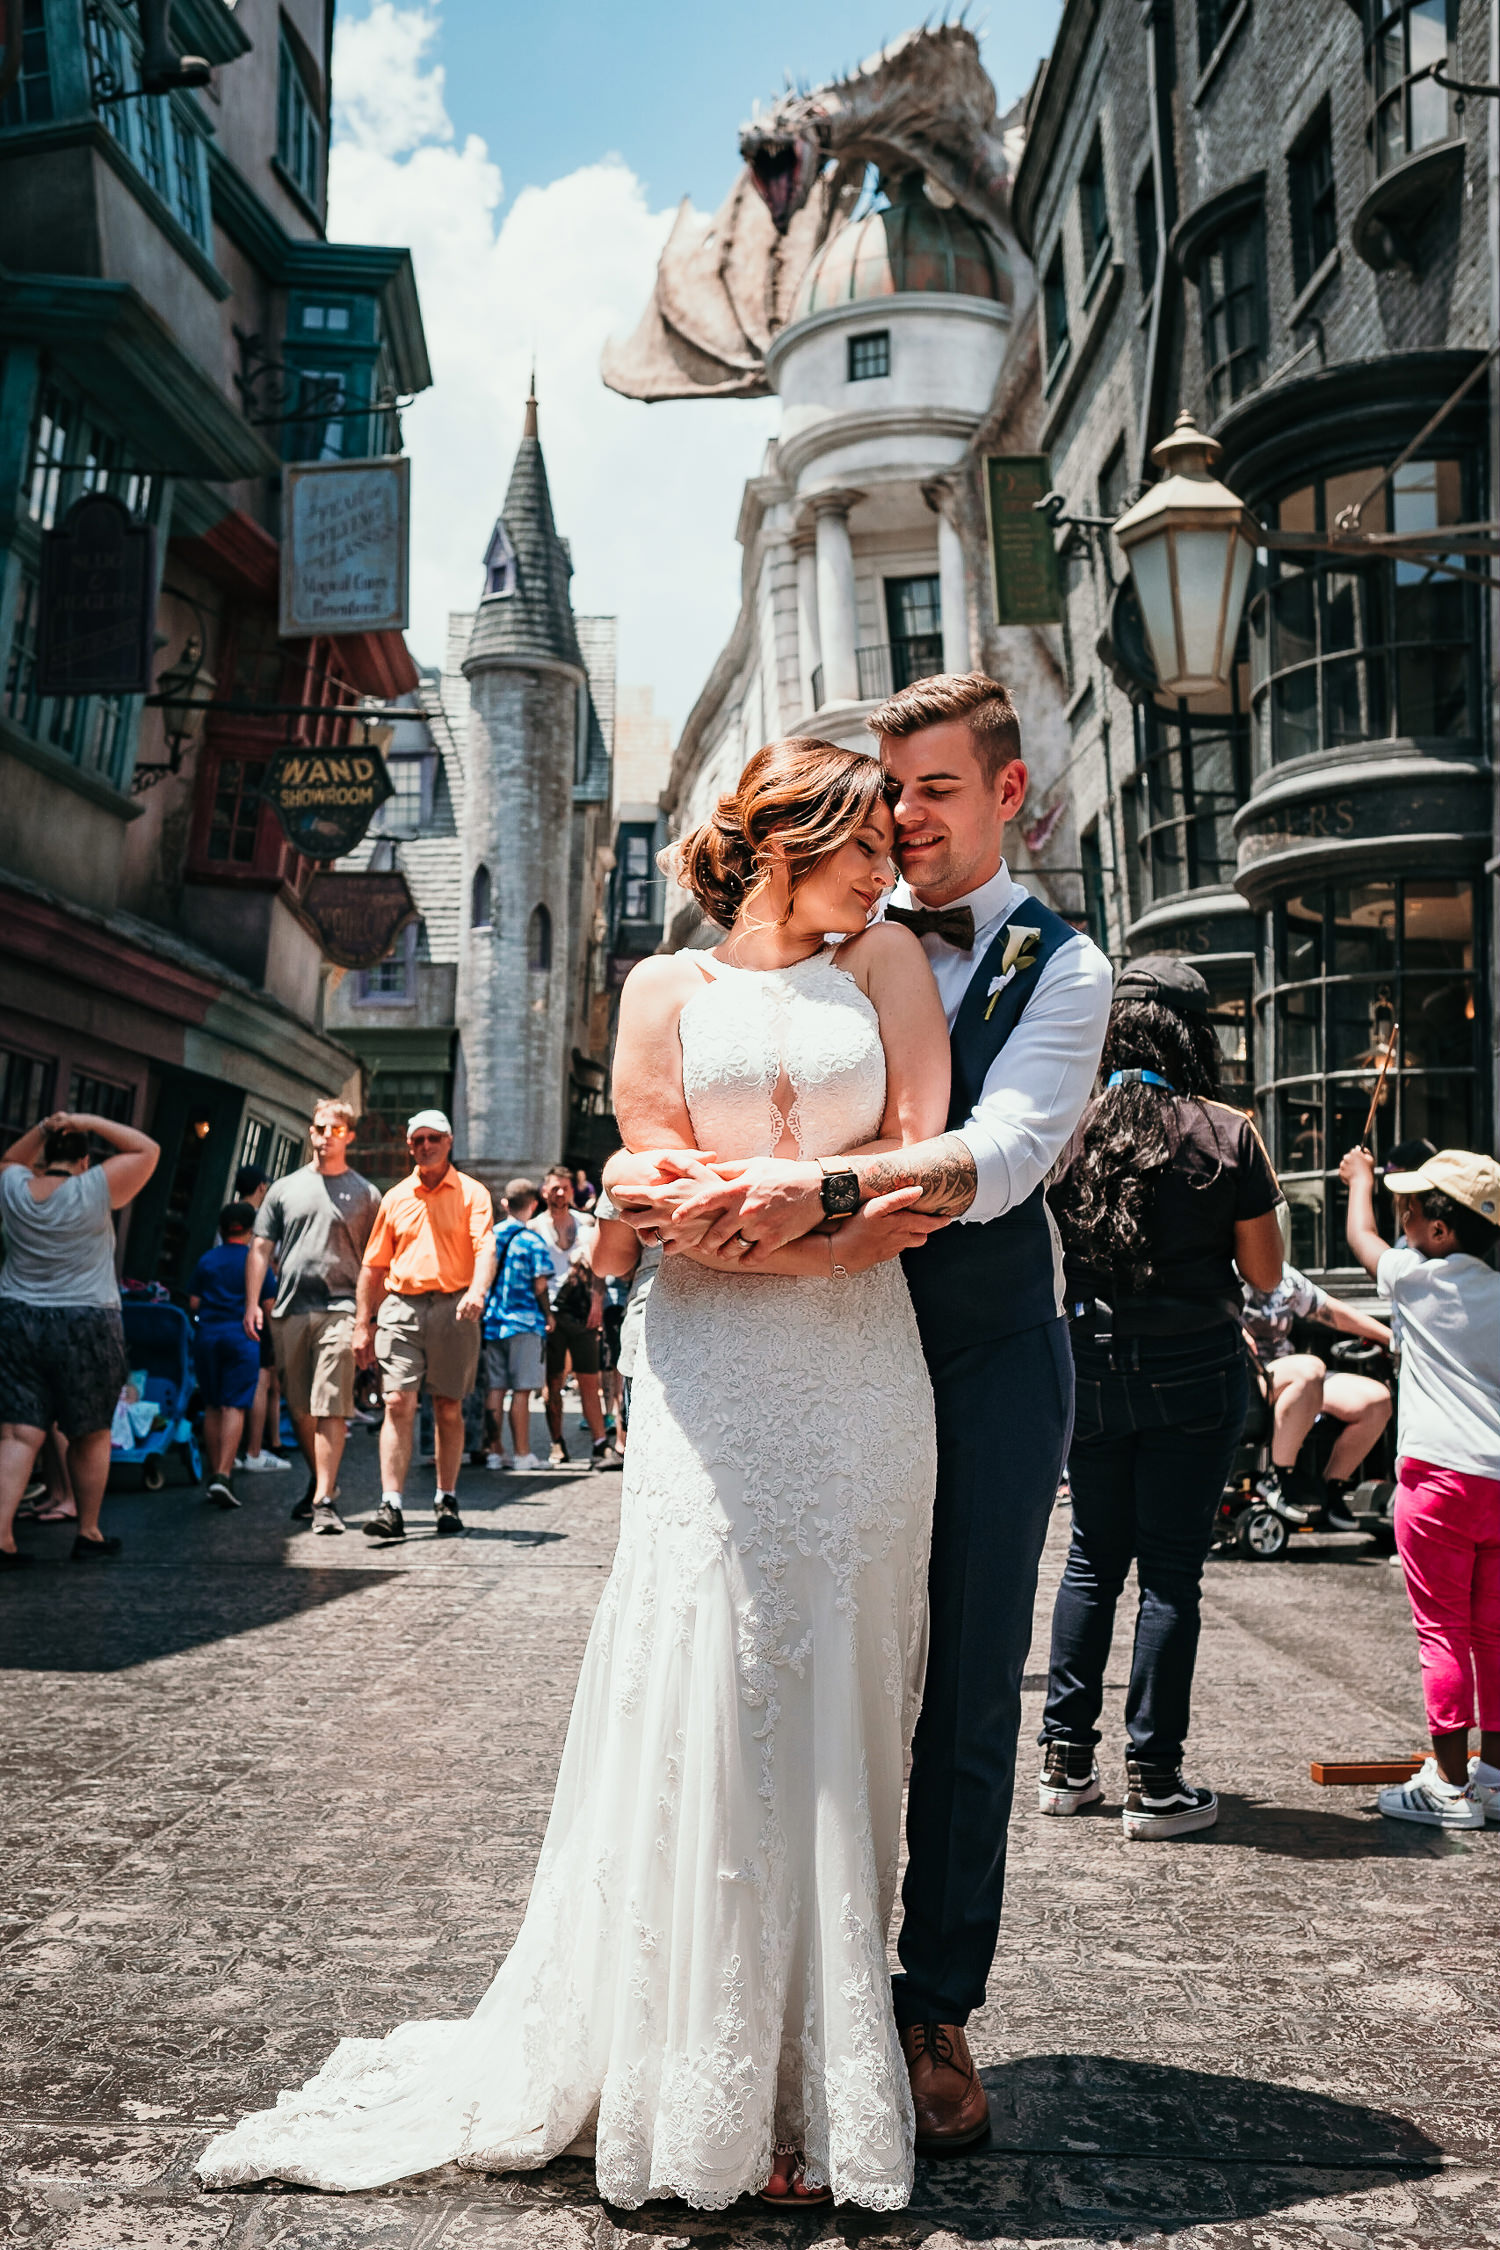 newlyweds hugging with gringotts dragon as the background